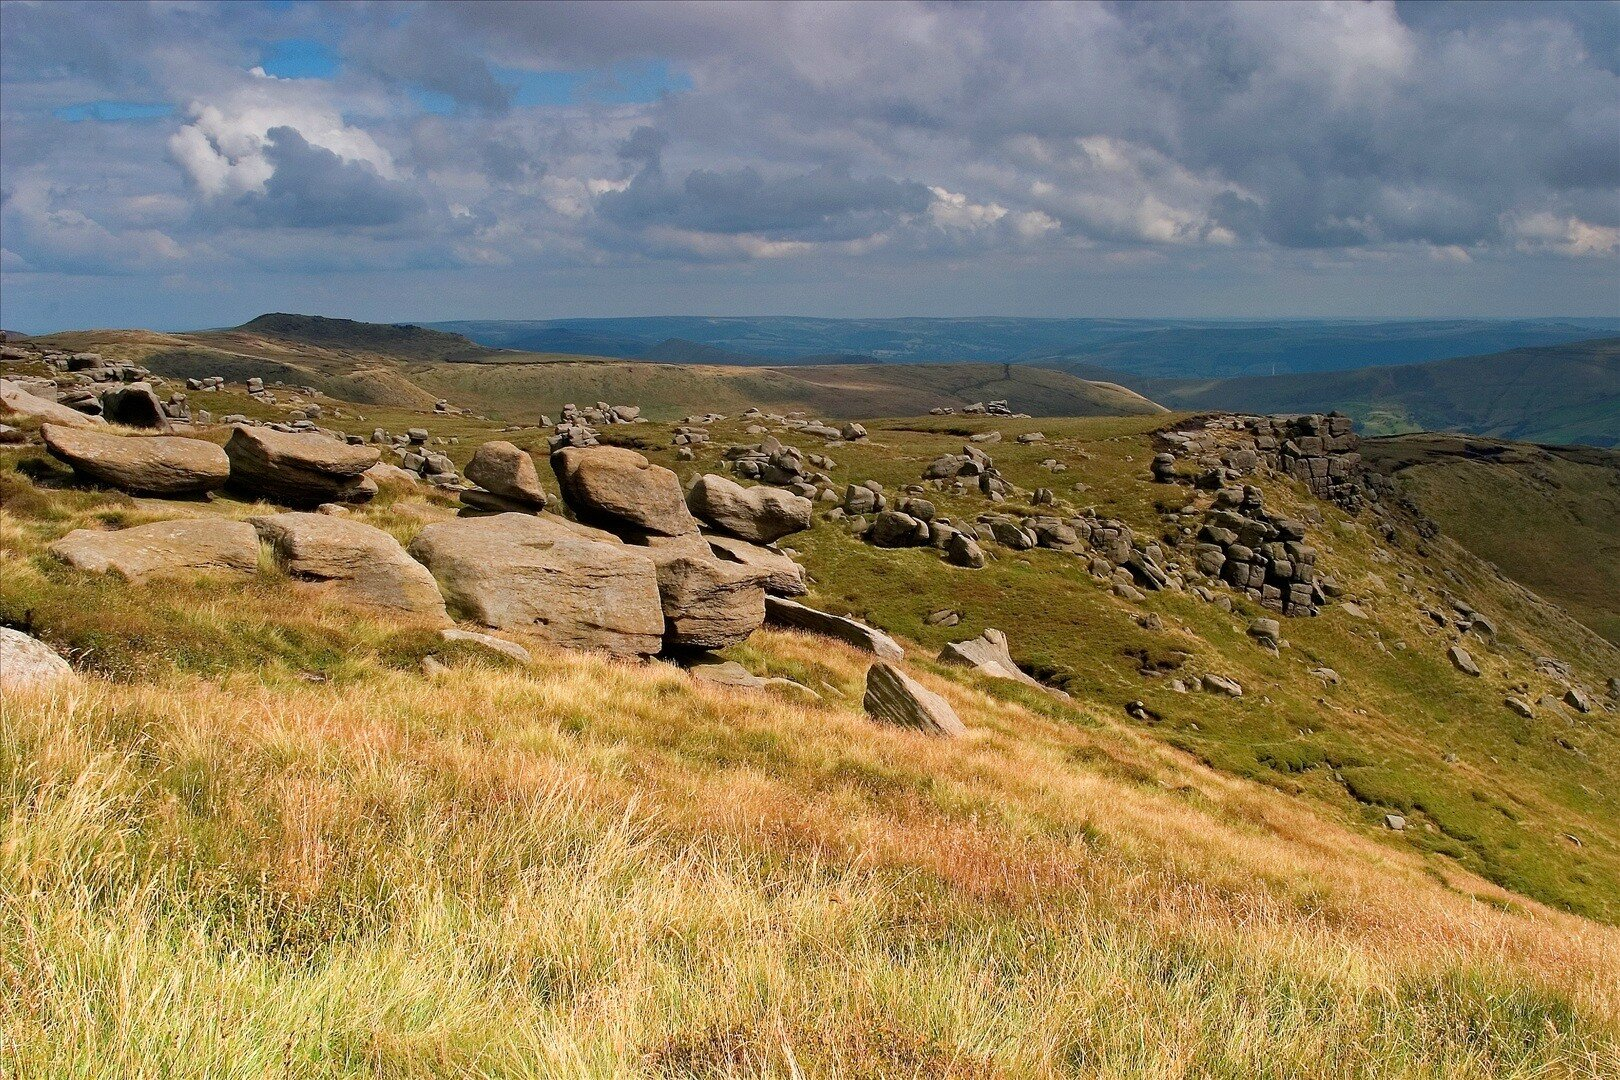 Ewan Maccoll et l'affaire de Kinder Scout